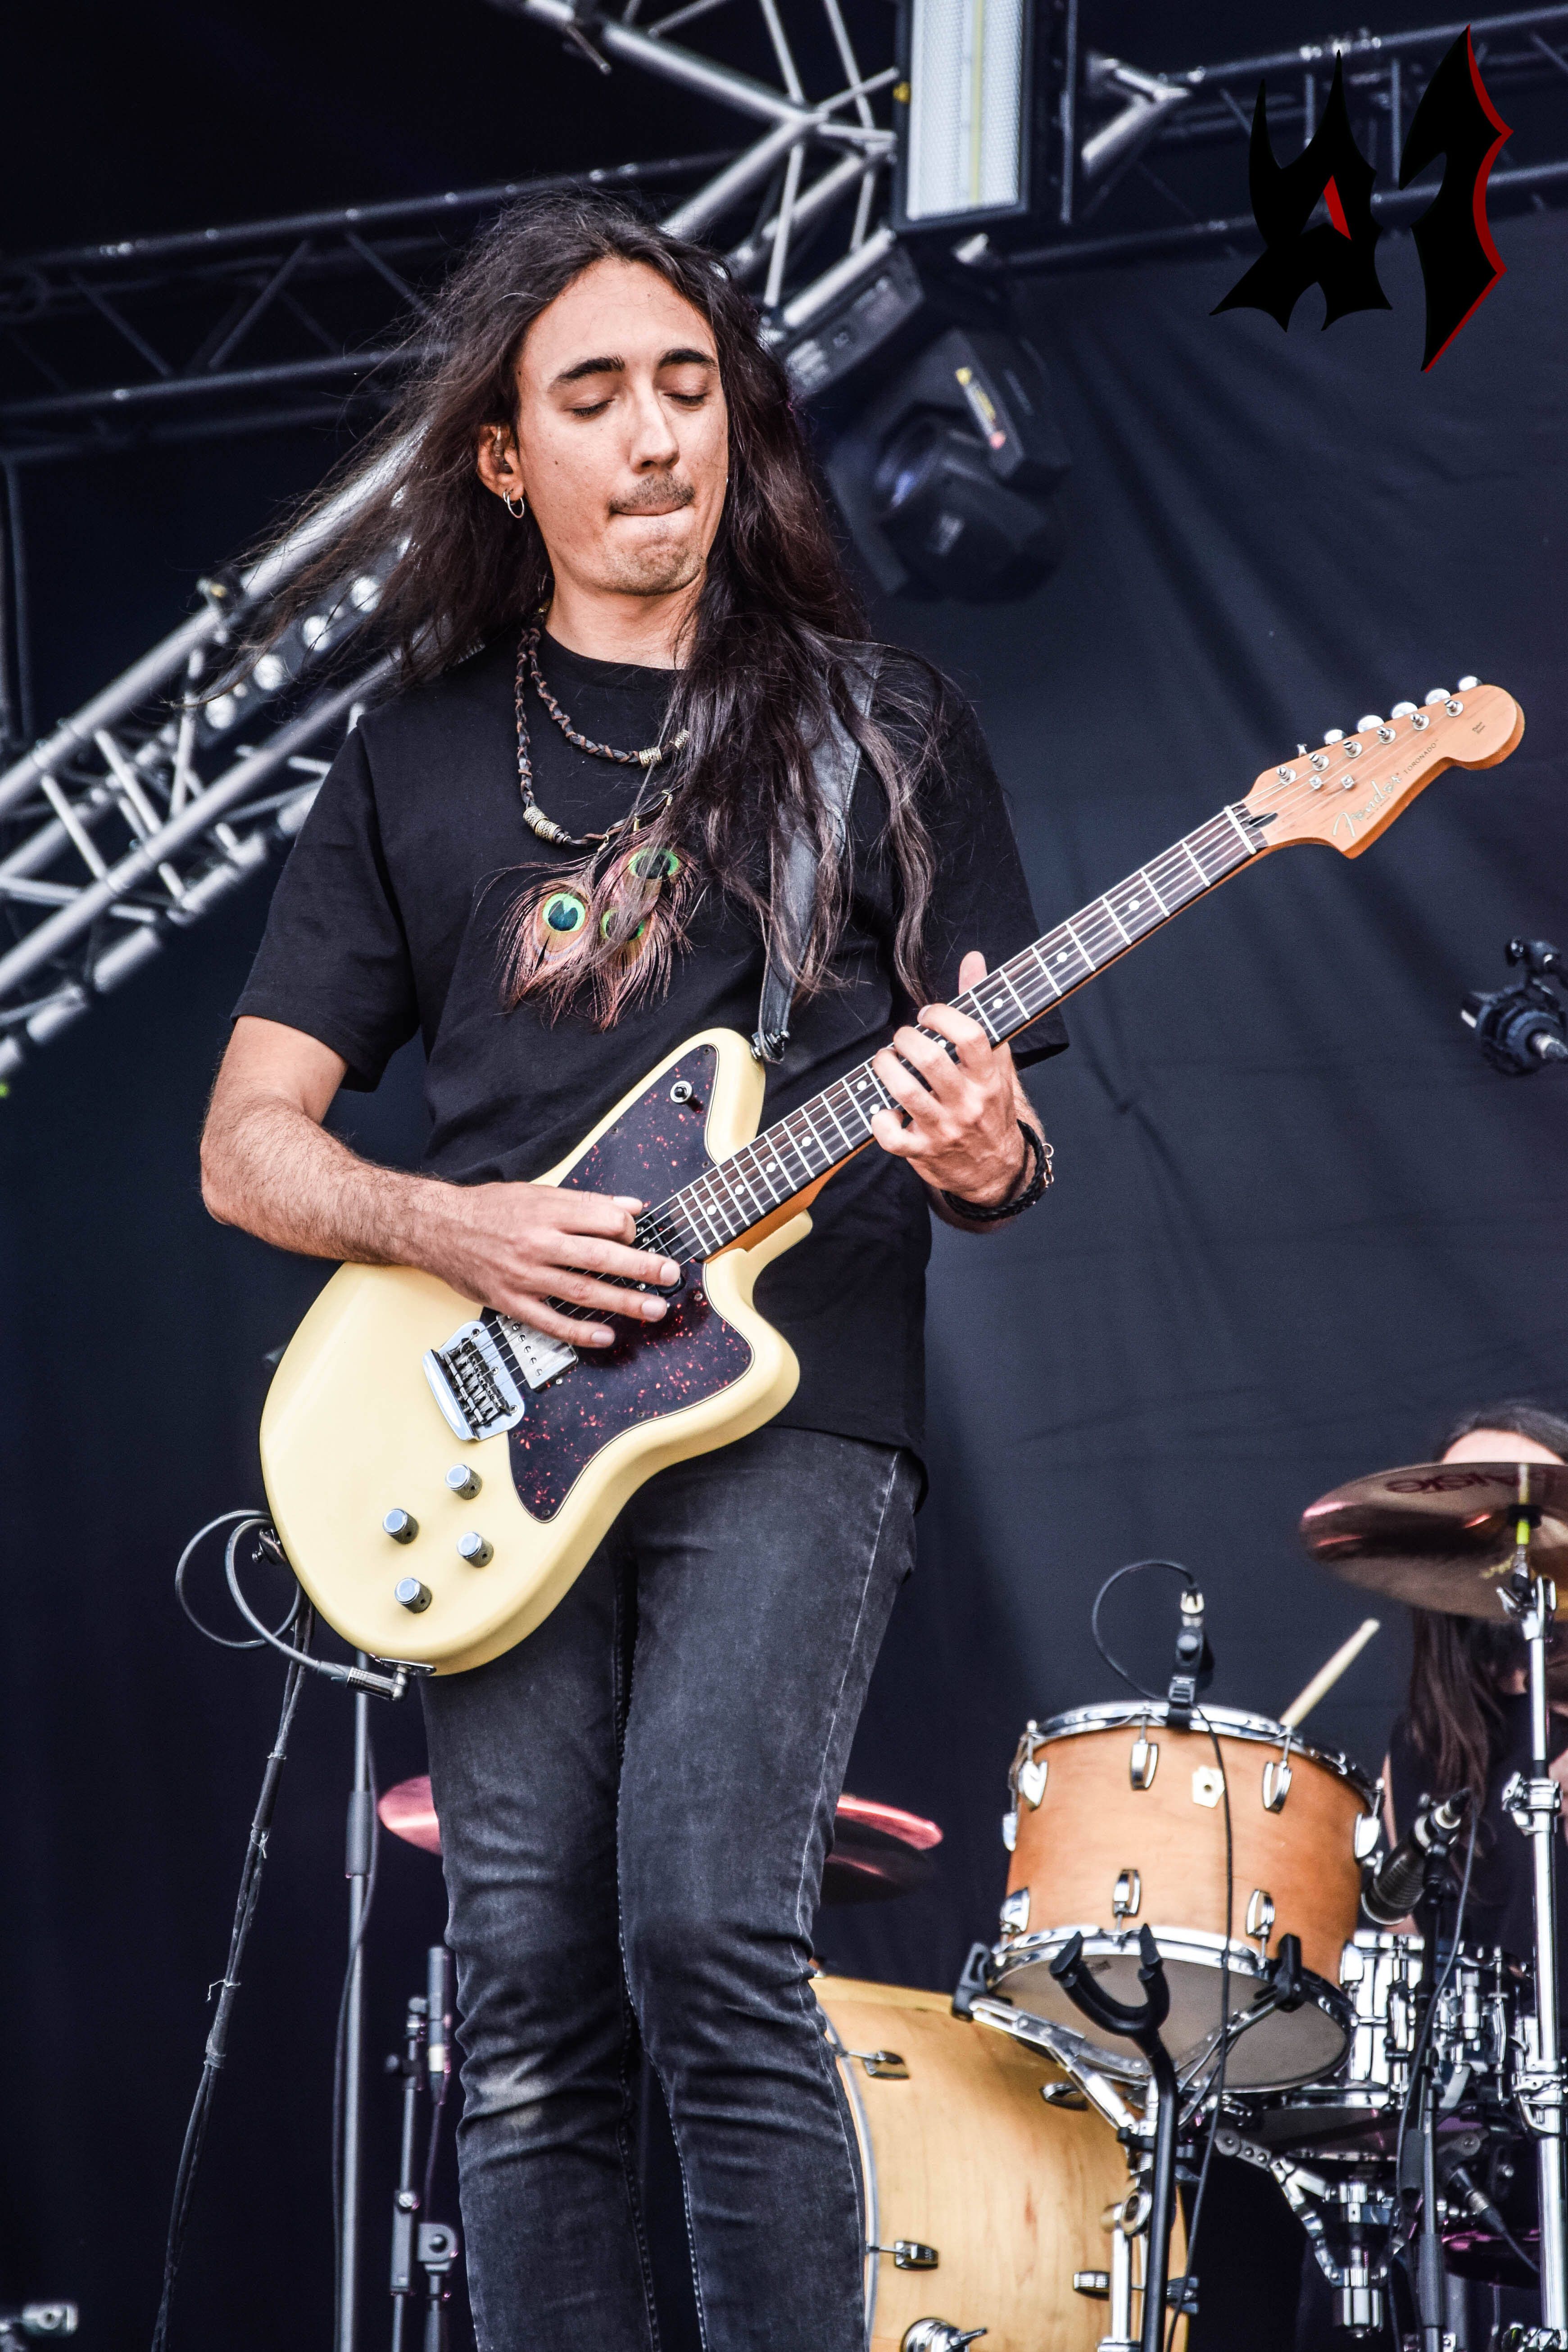 Donwload 2018 – Day 2 - Alcest 9